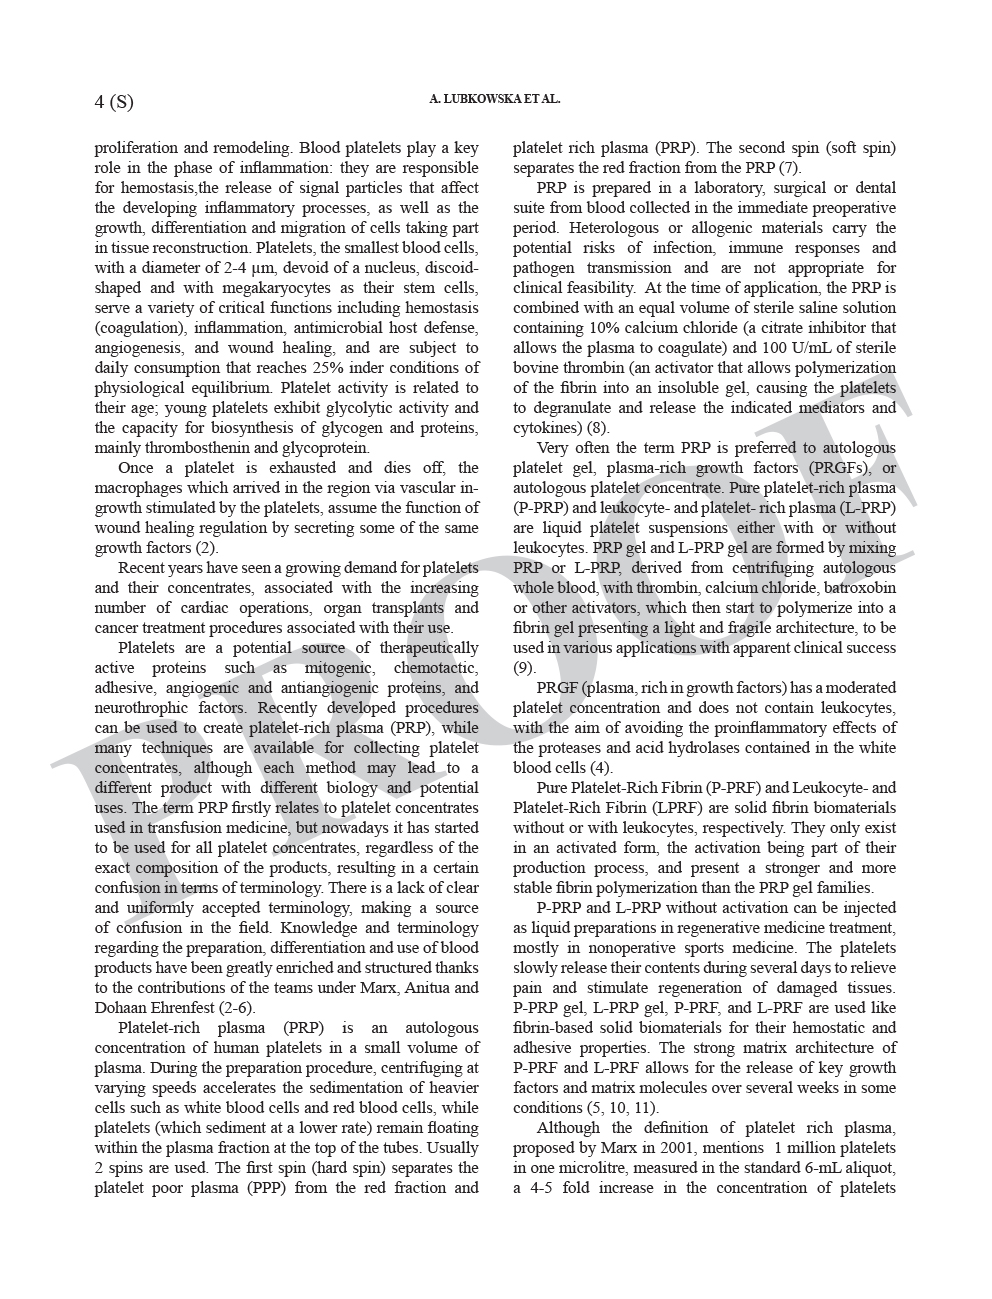 Growth Factor Content in PRP Applicability in Medicine 3 1